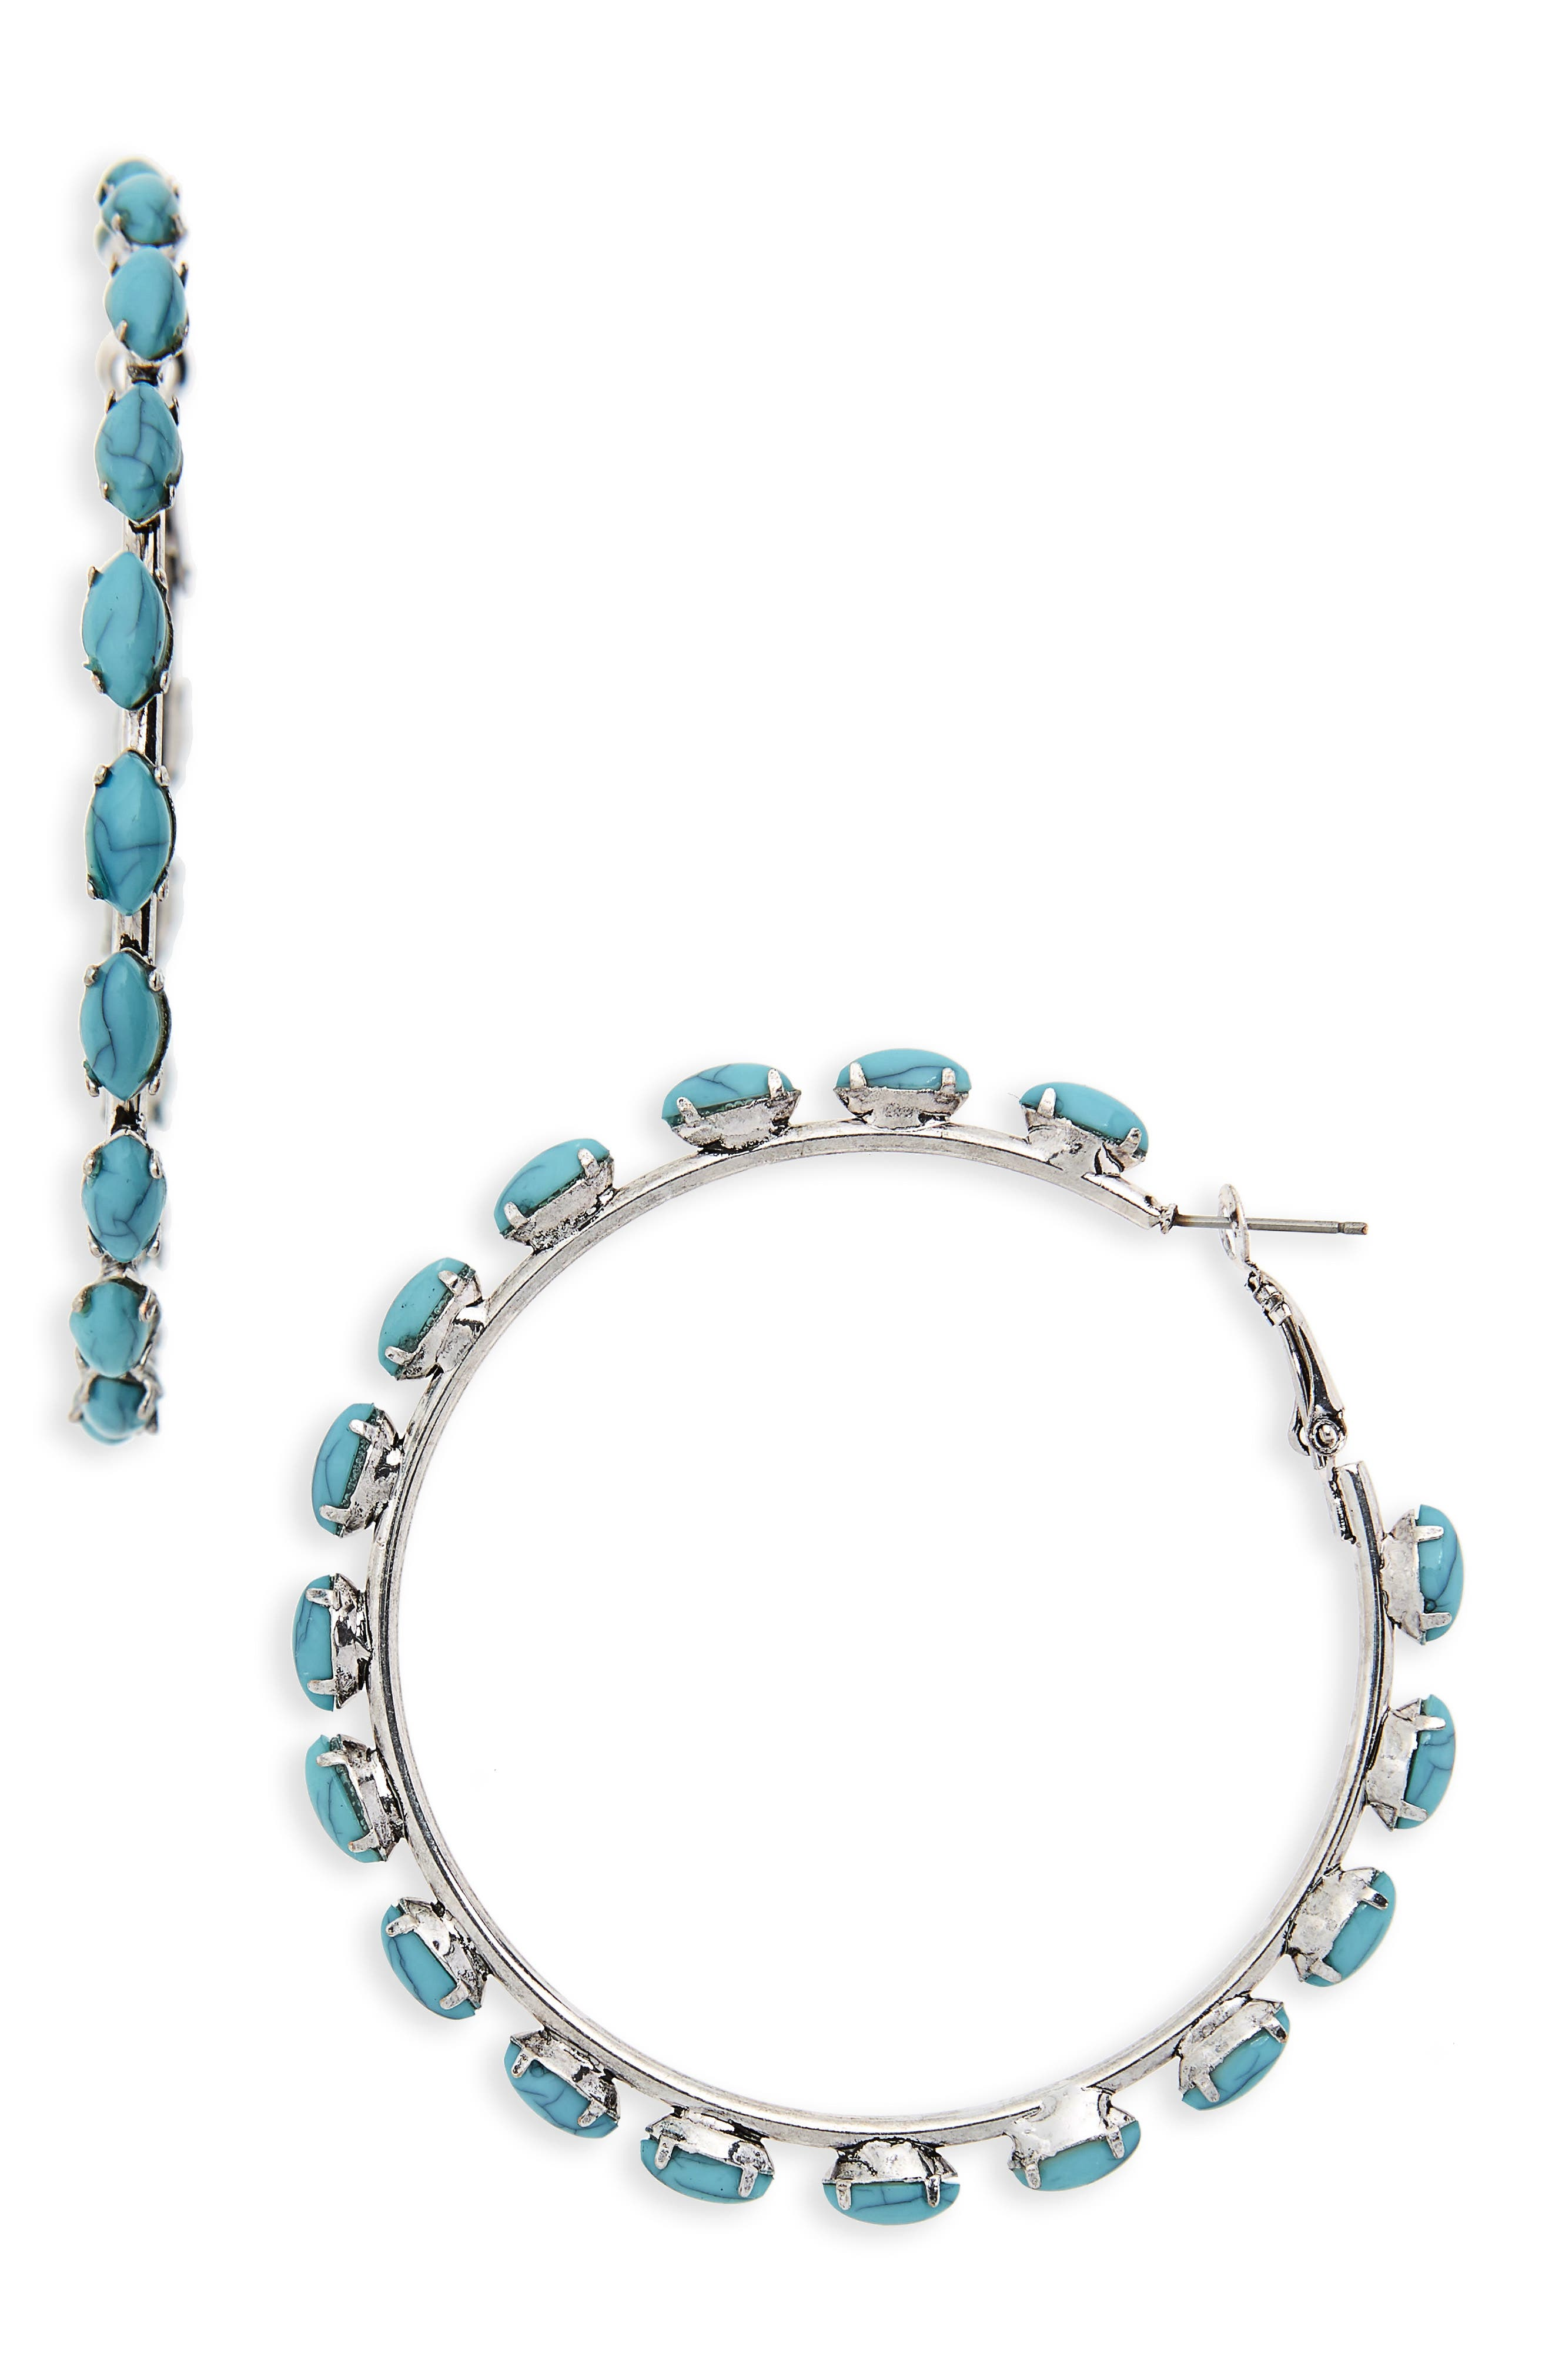 Bead Edge Hoop Earrings,                         Main,                         color, Silver/ Turquoise